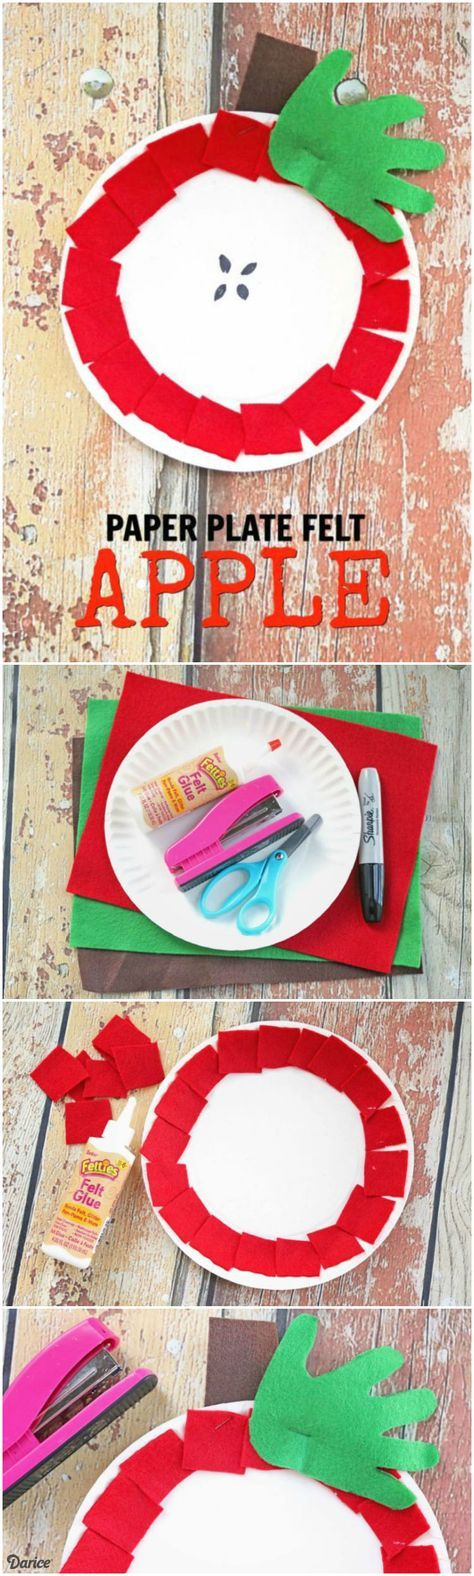 This cute apple craft is perfect for a back to school classroom project or an at home kid's craft.